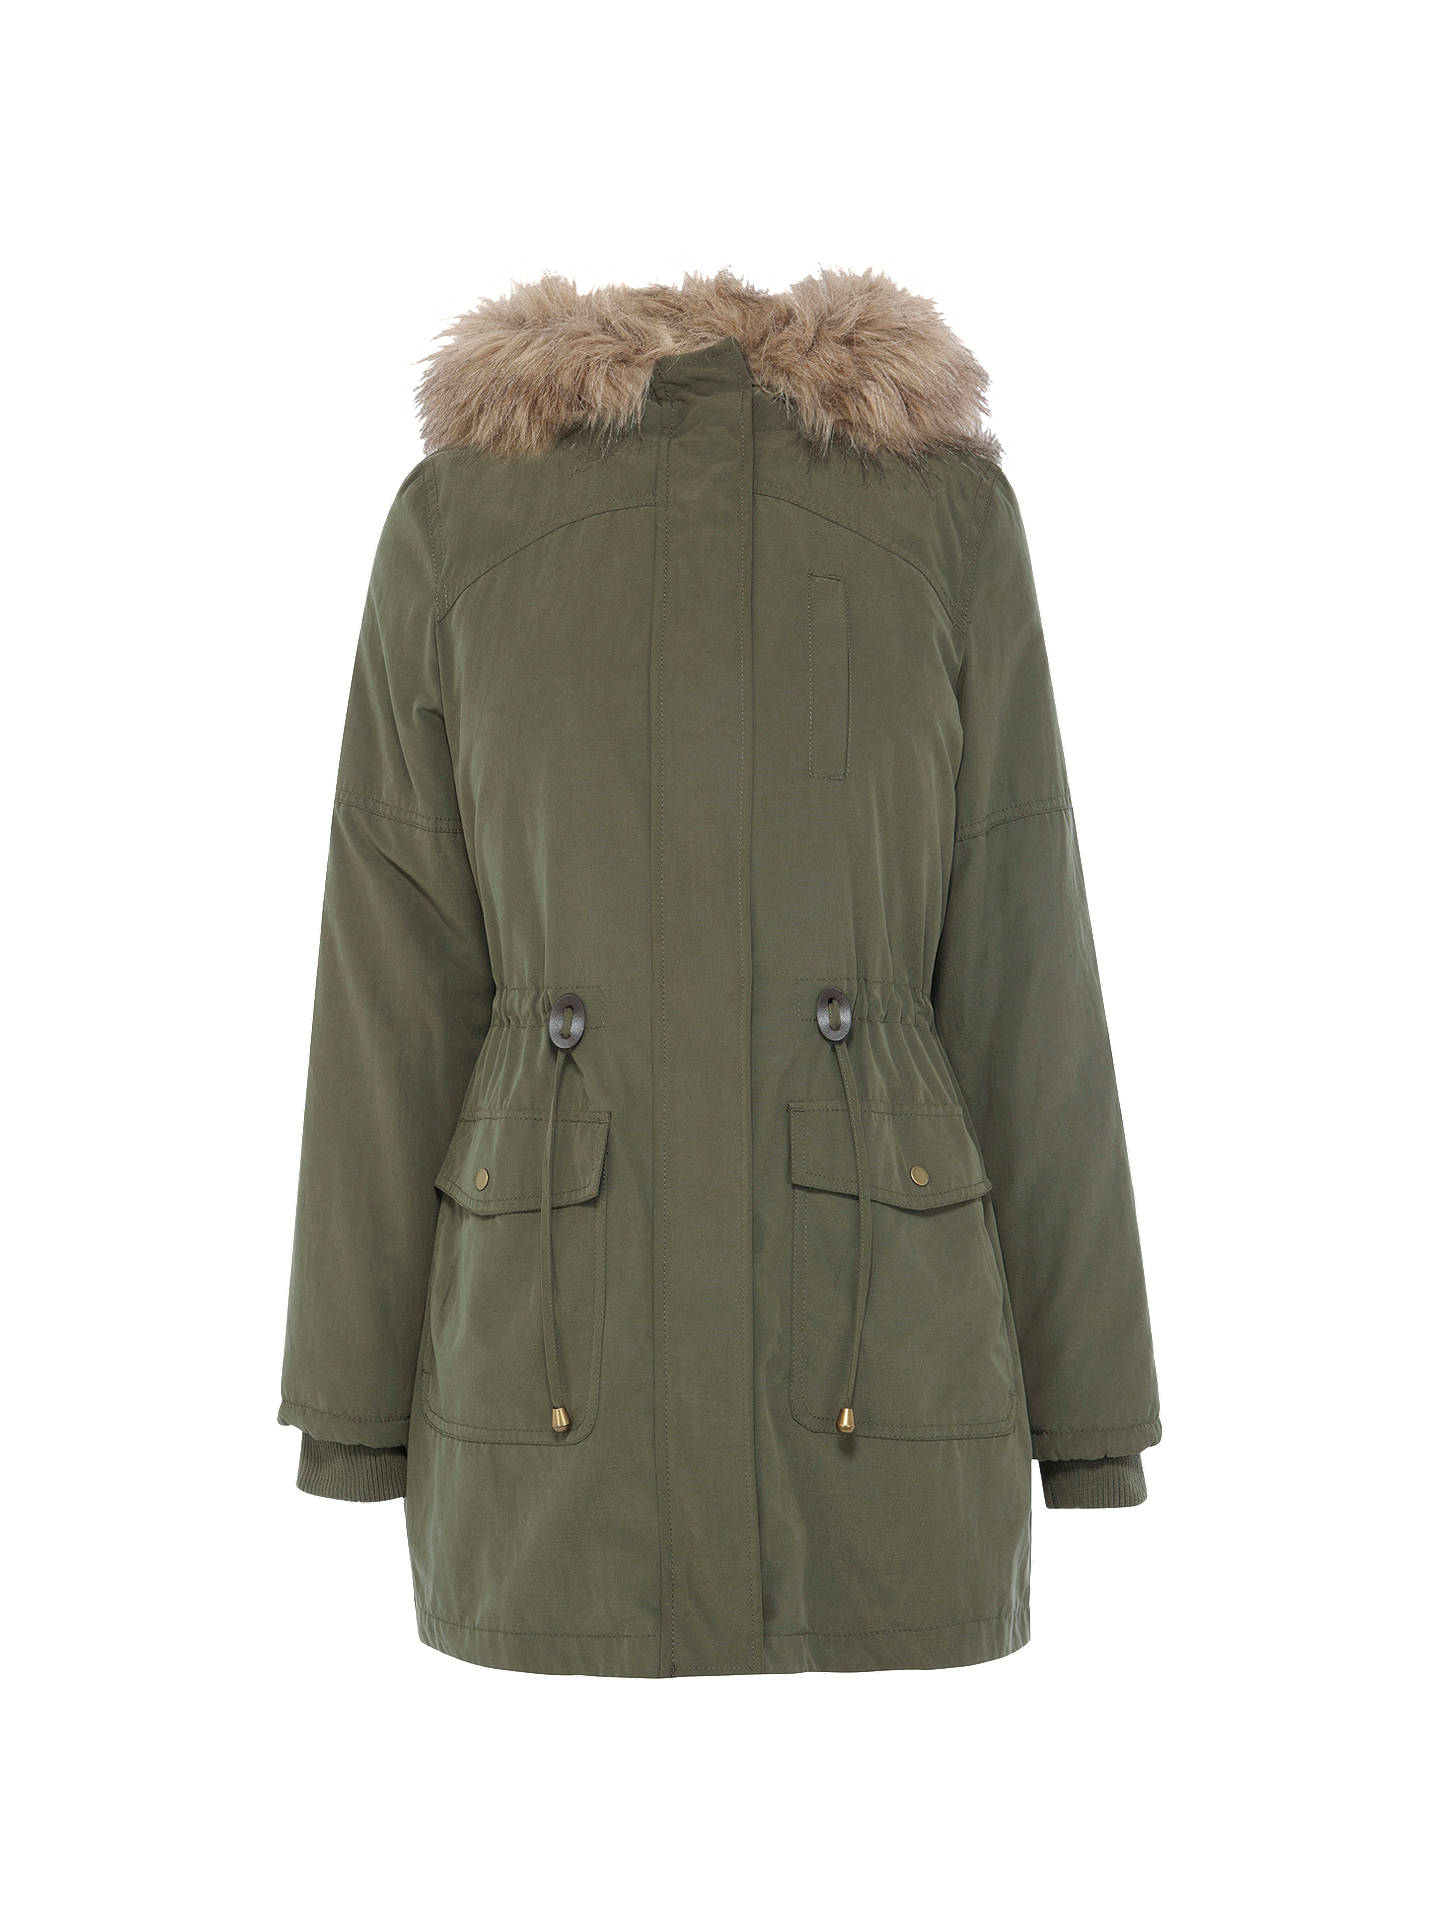 effdbb908516 Buy Oasis Ellie Faux Fur Lined Parka, Khaki, L Online at johnlewis.com ...